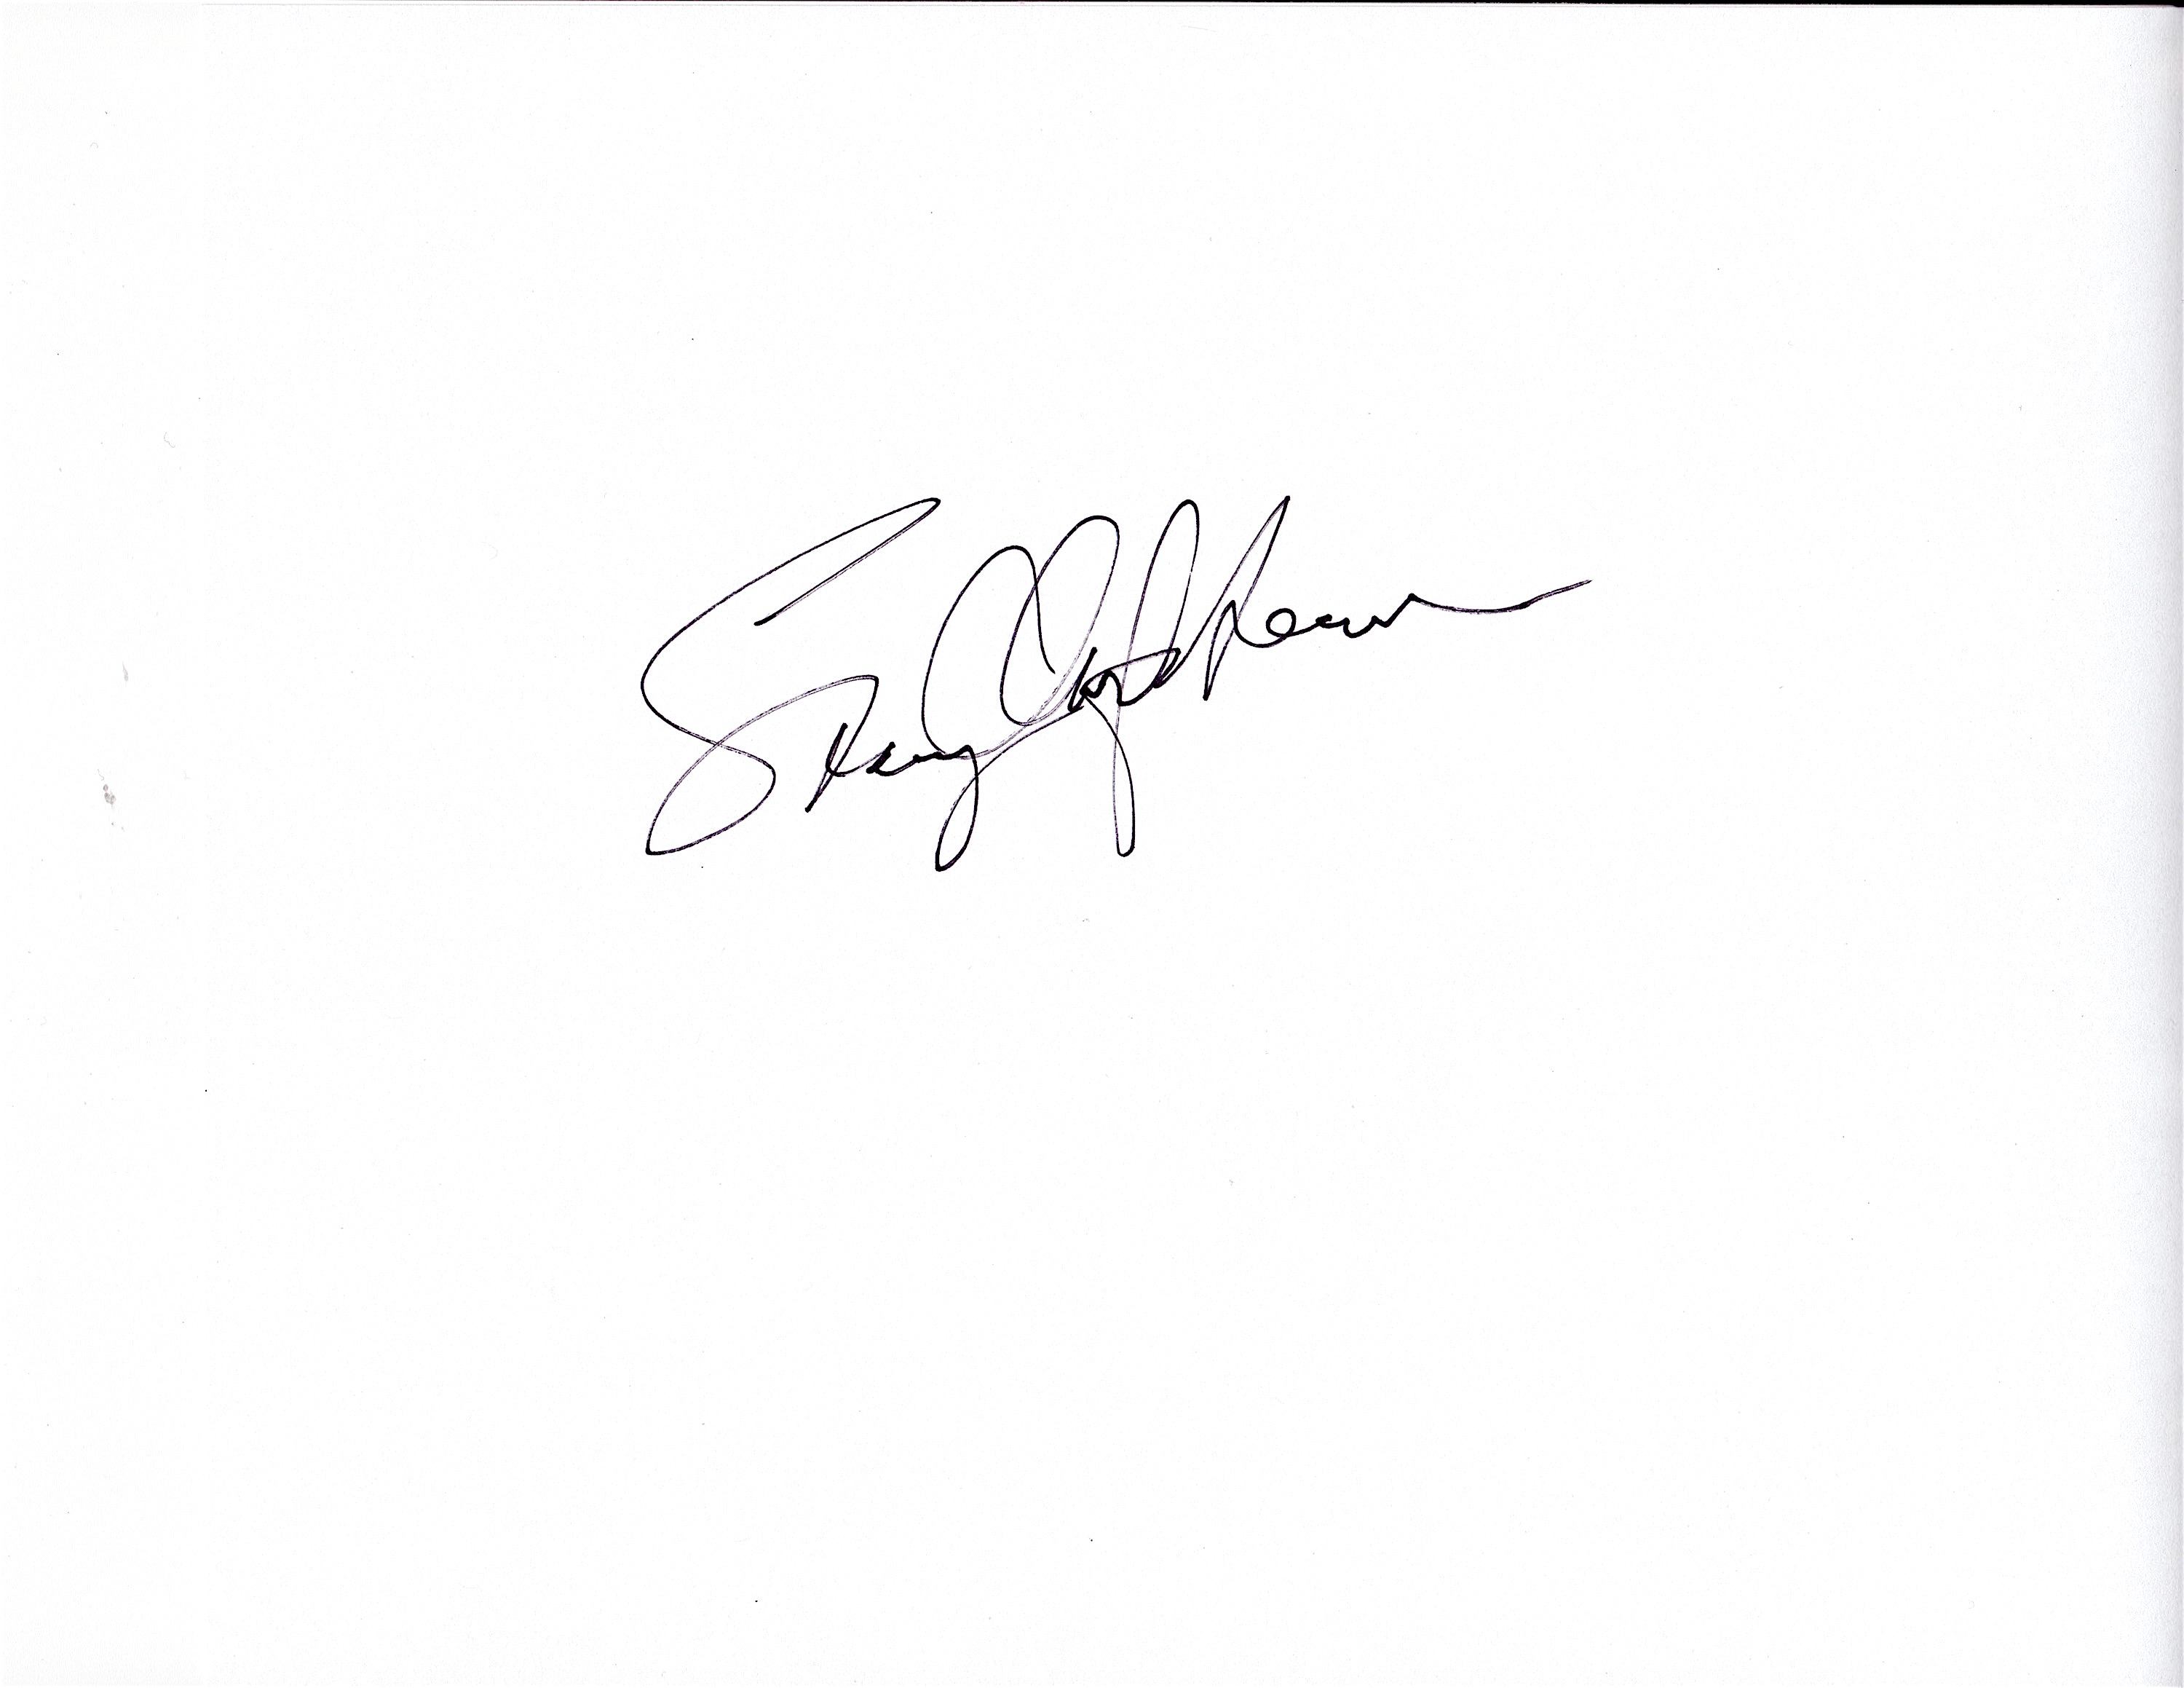 stacey Clarfield Newman Signature